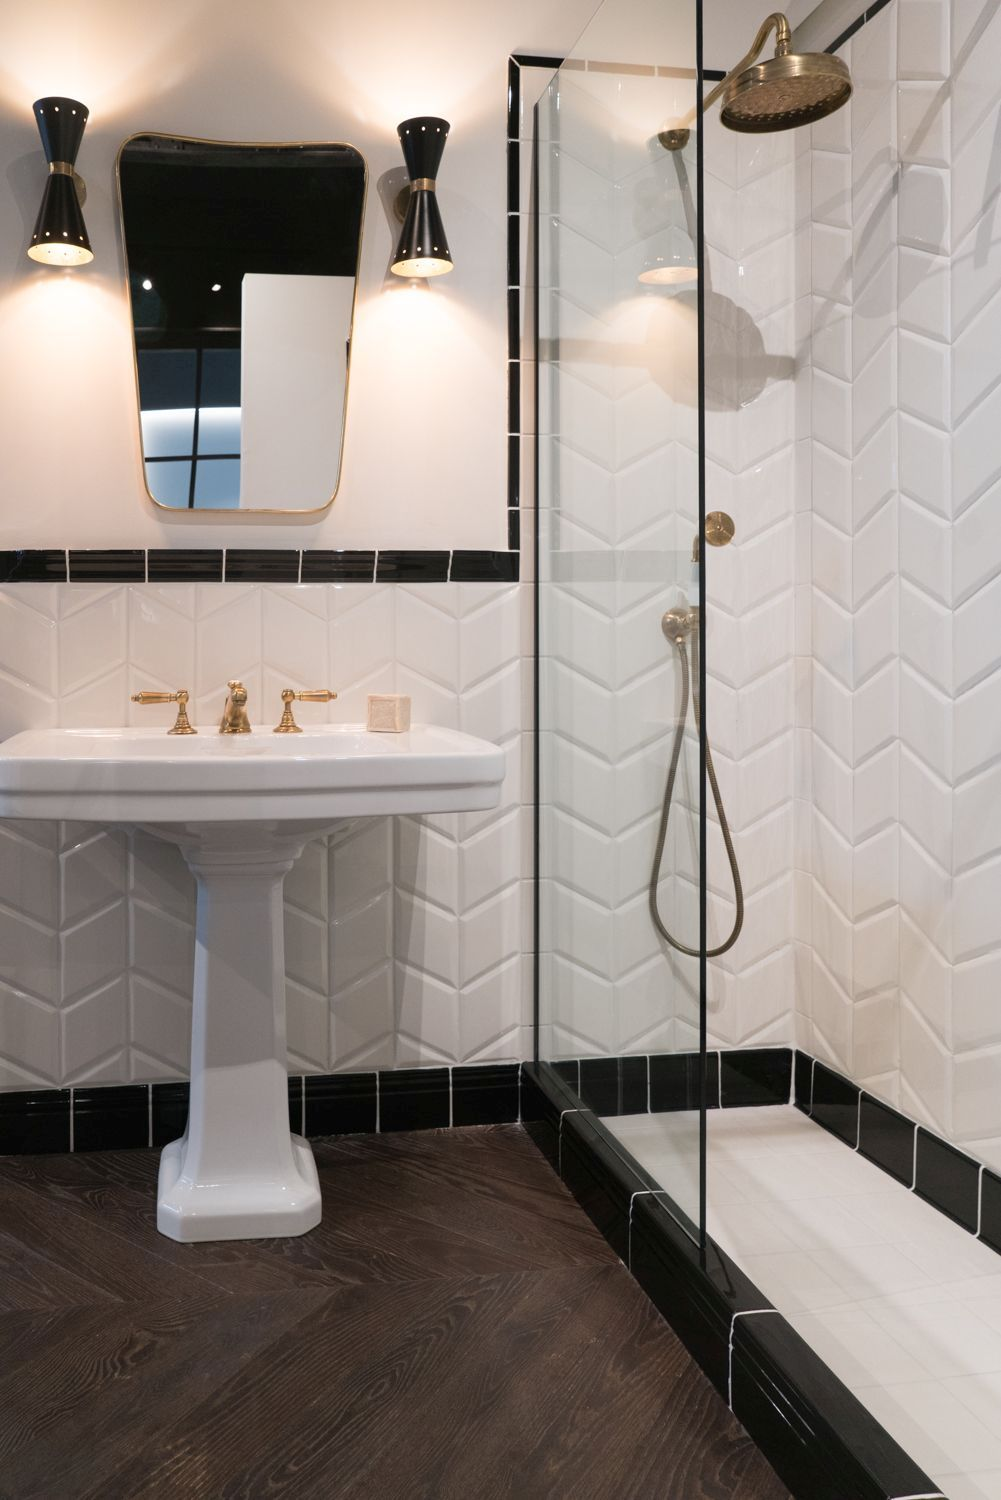 Tile For Bathroom Porcelain Vs Ceramic Tile Is A Decision Driven By Budget And Purpose